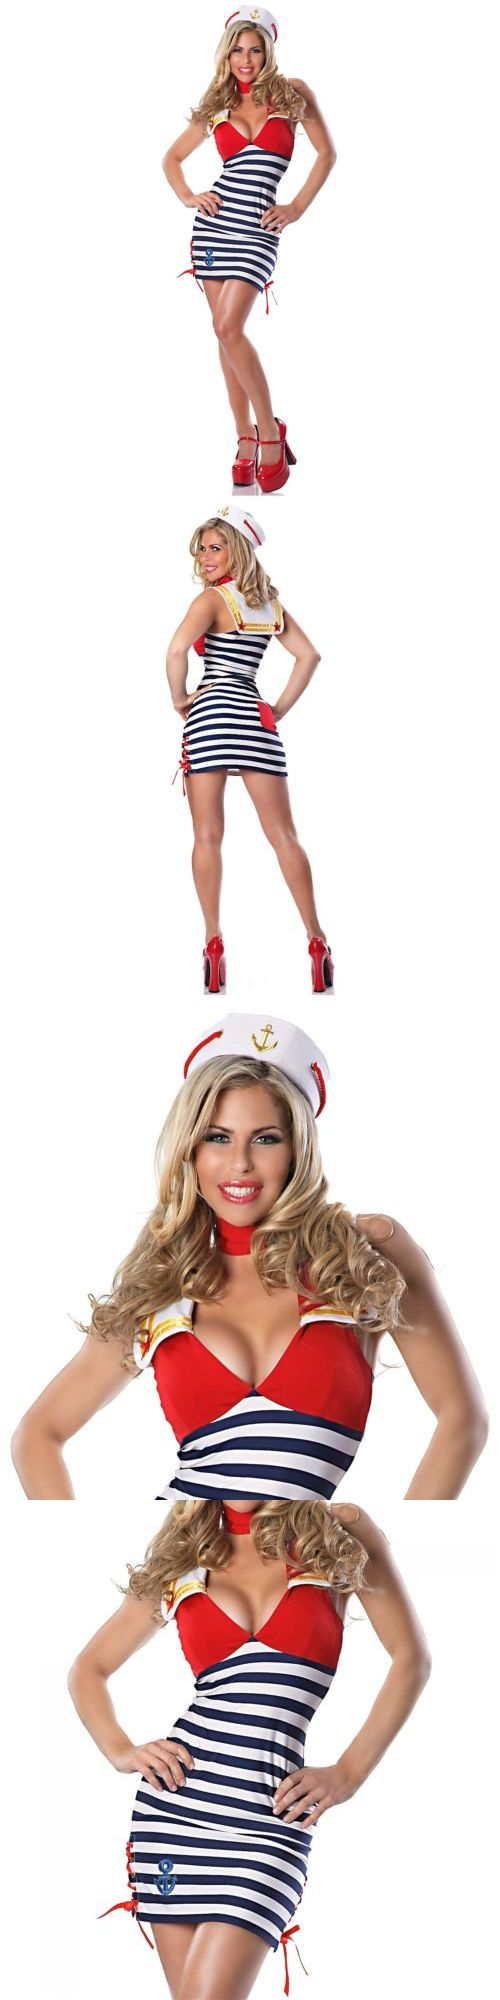 Halloween Costumes Women: Sailor Costume Adult Pin Up Girl Halloween Fancy Dress BUY IT NOW ONLY: $40.69